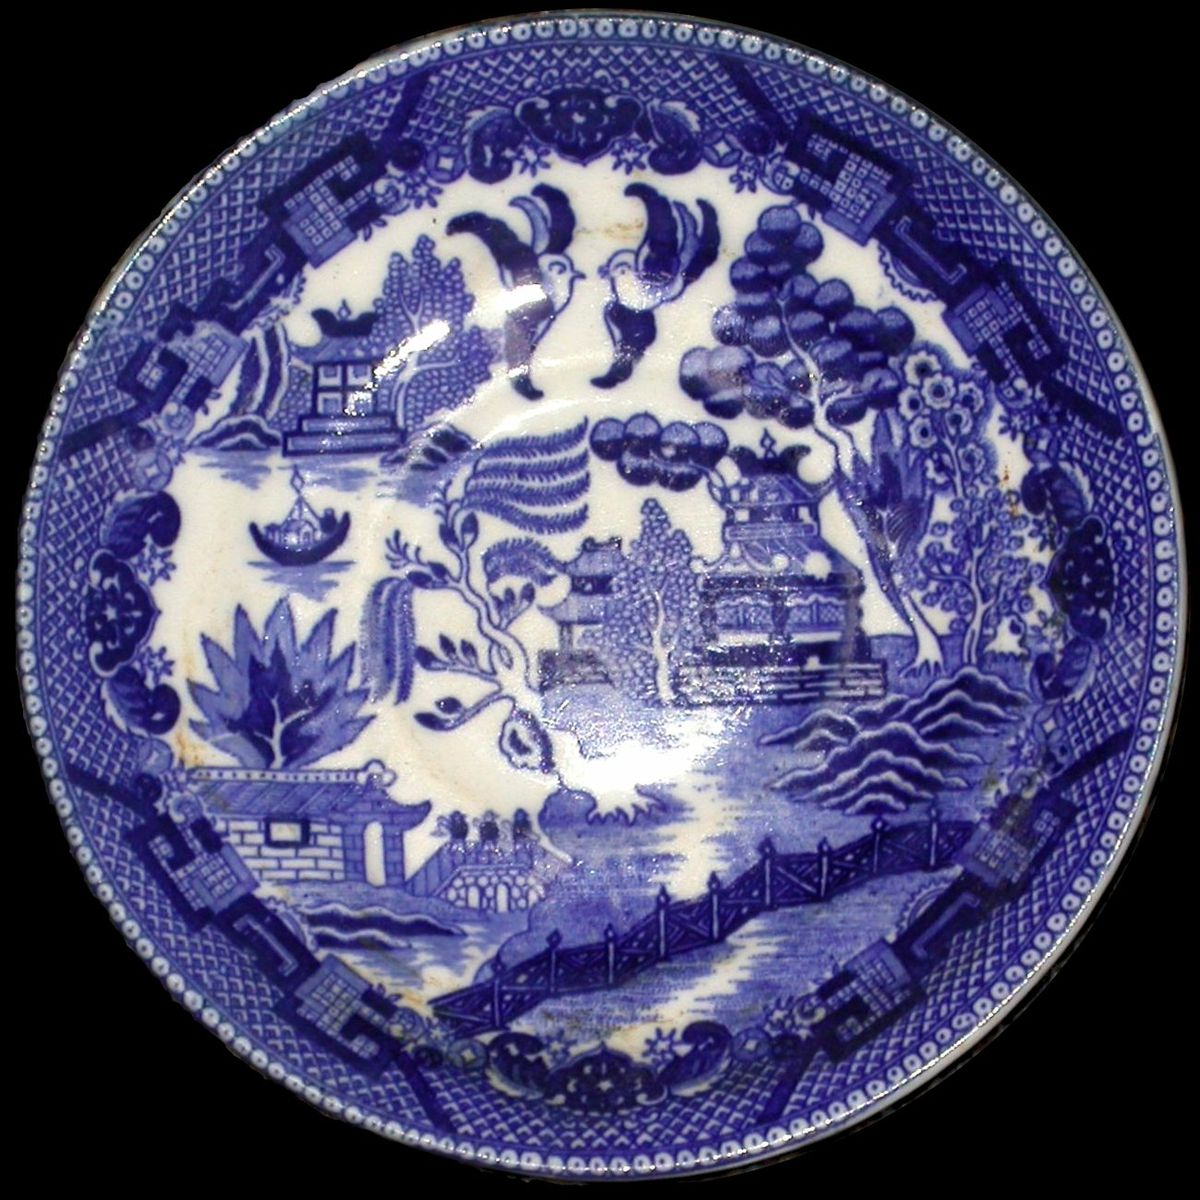 Willow Pattern Wikipedia